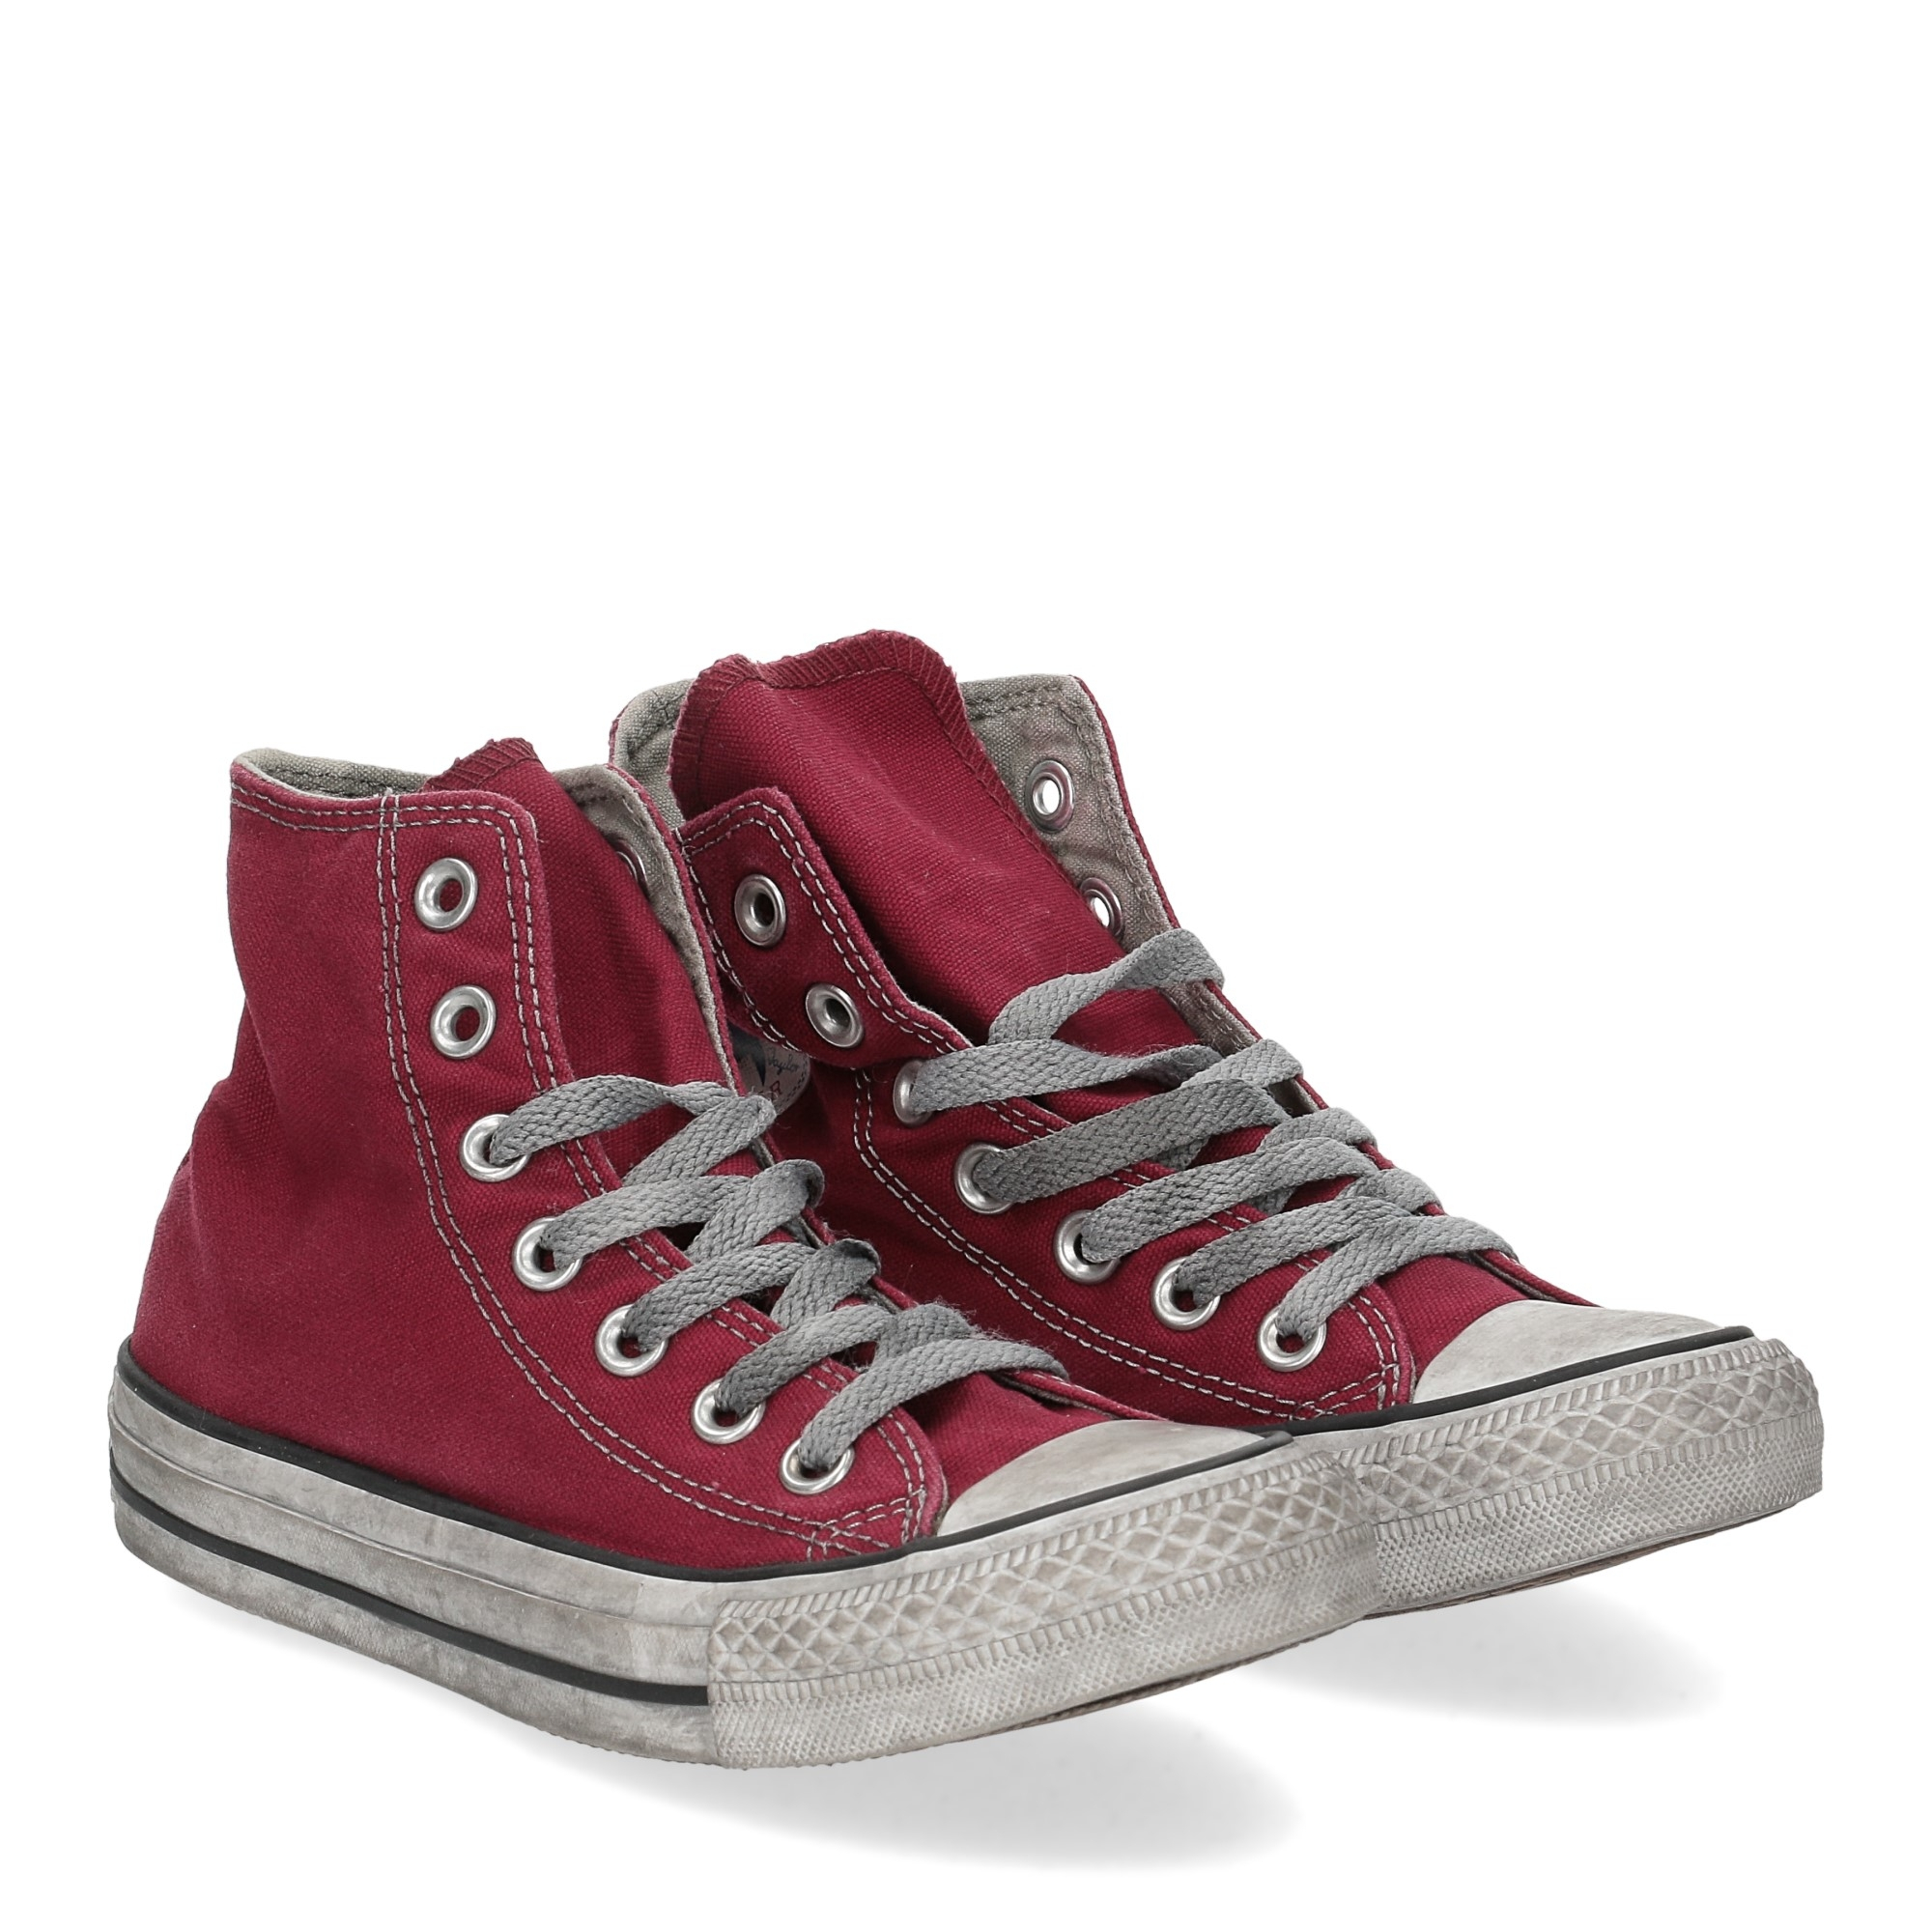 Converse All Star Hi Canvas Limited Edition maroon bordeaux